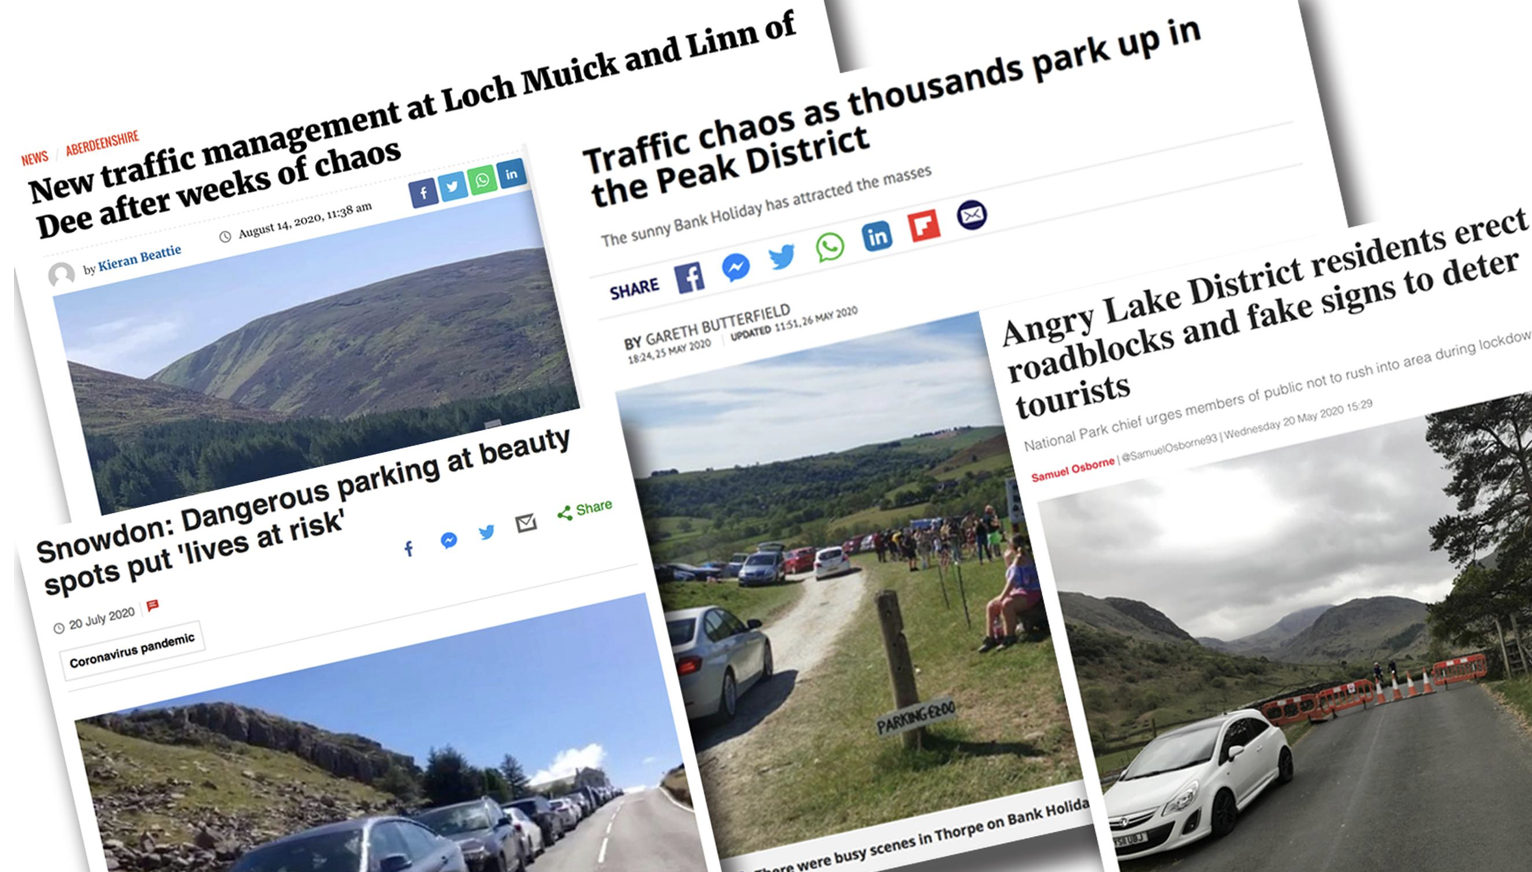 Staycations have exposed the need for coherent strategies to manage leisure traffic